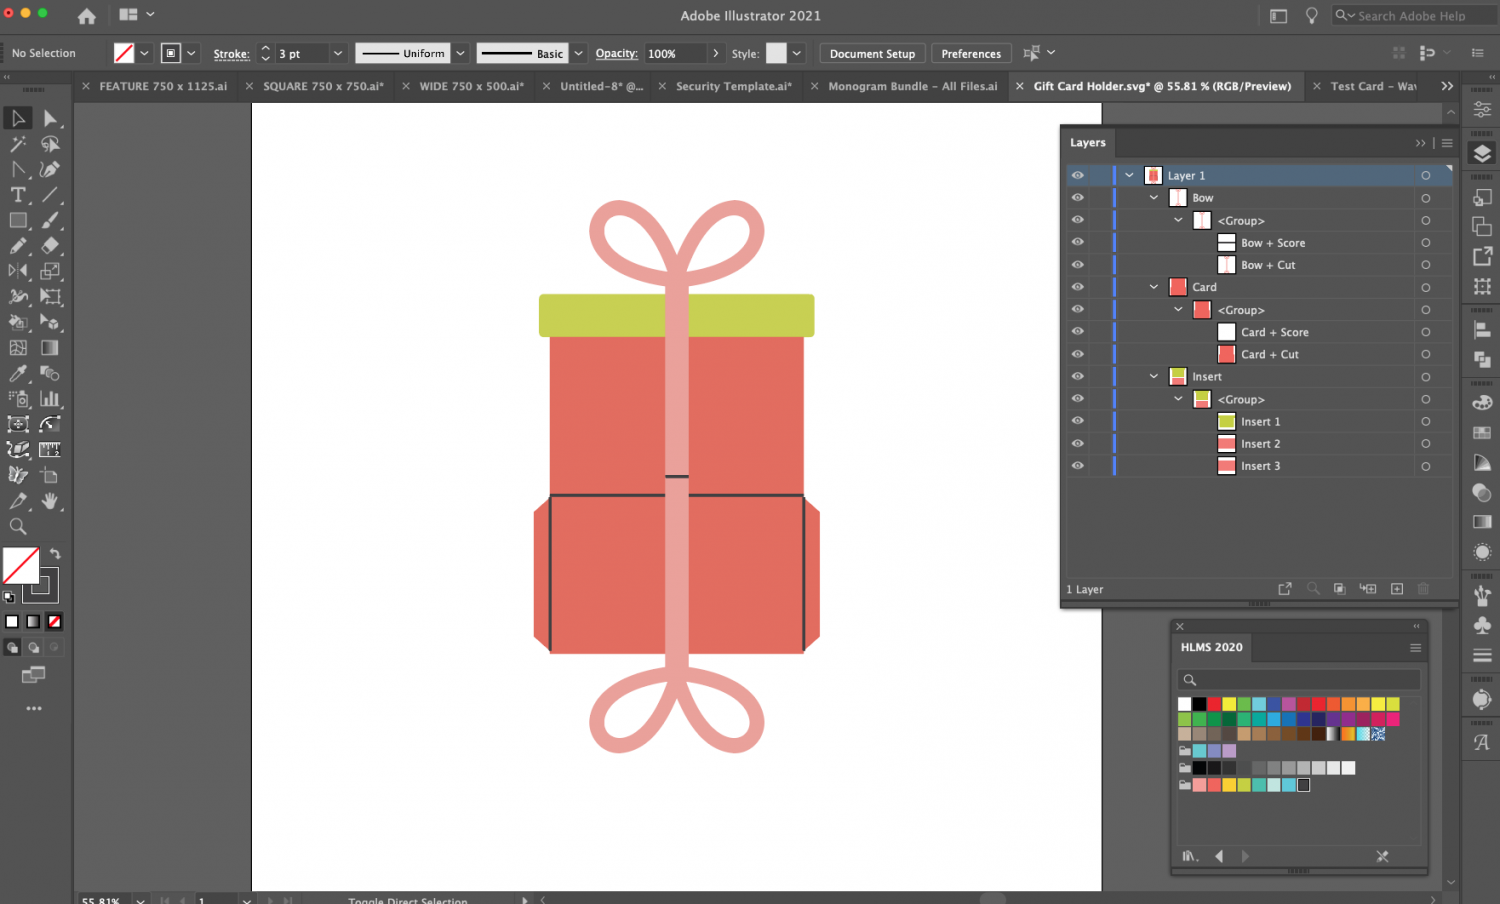 Adobe Illustrator: Gift Card File with score lines